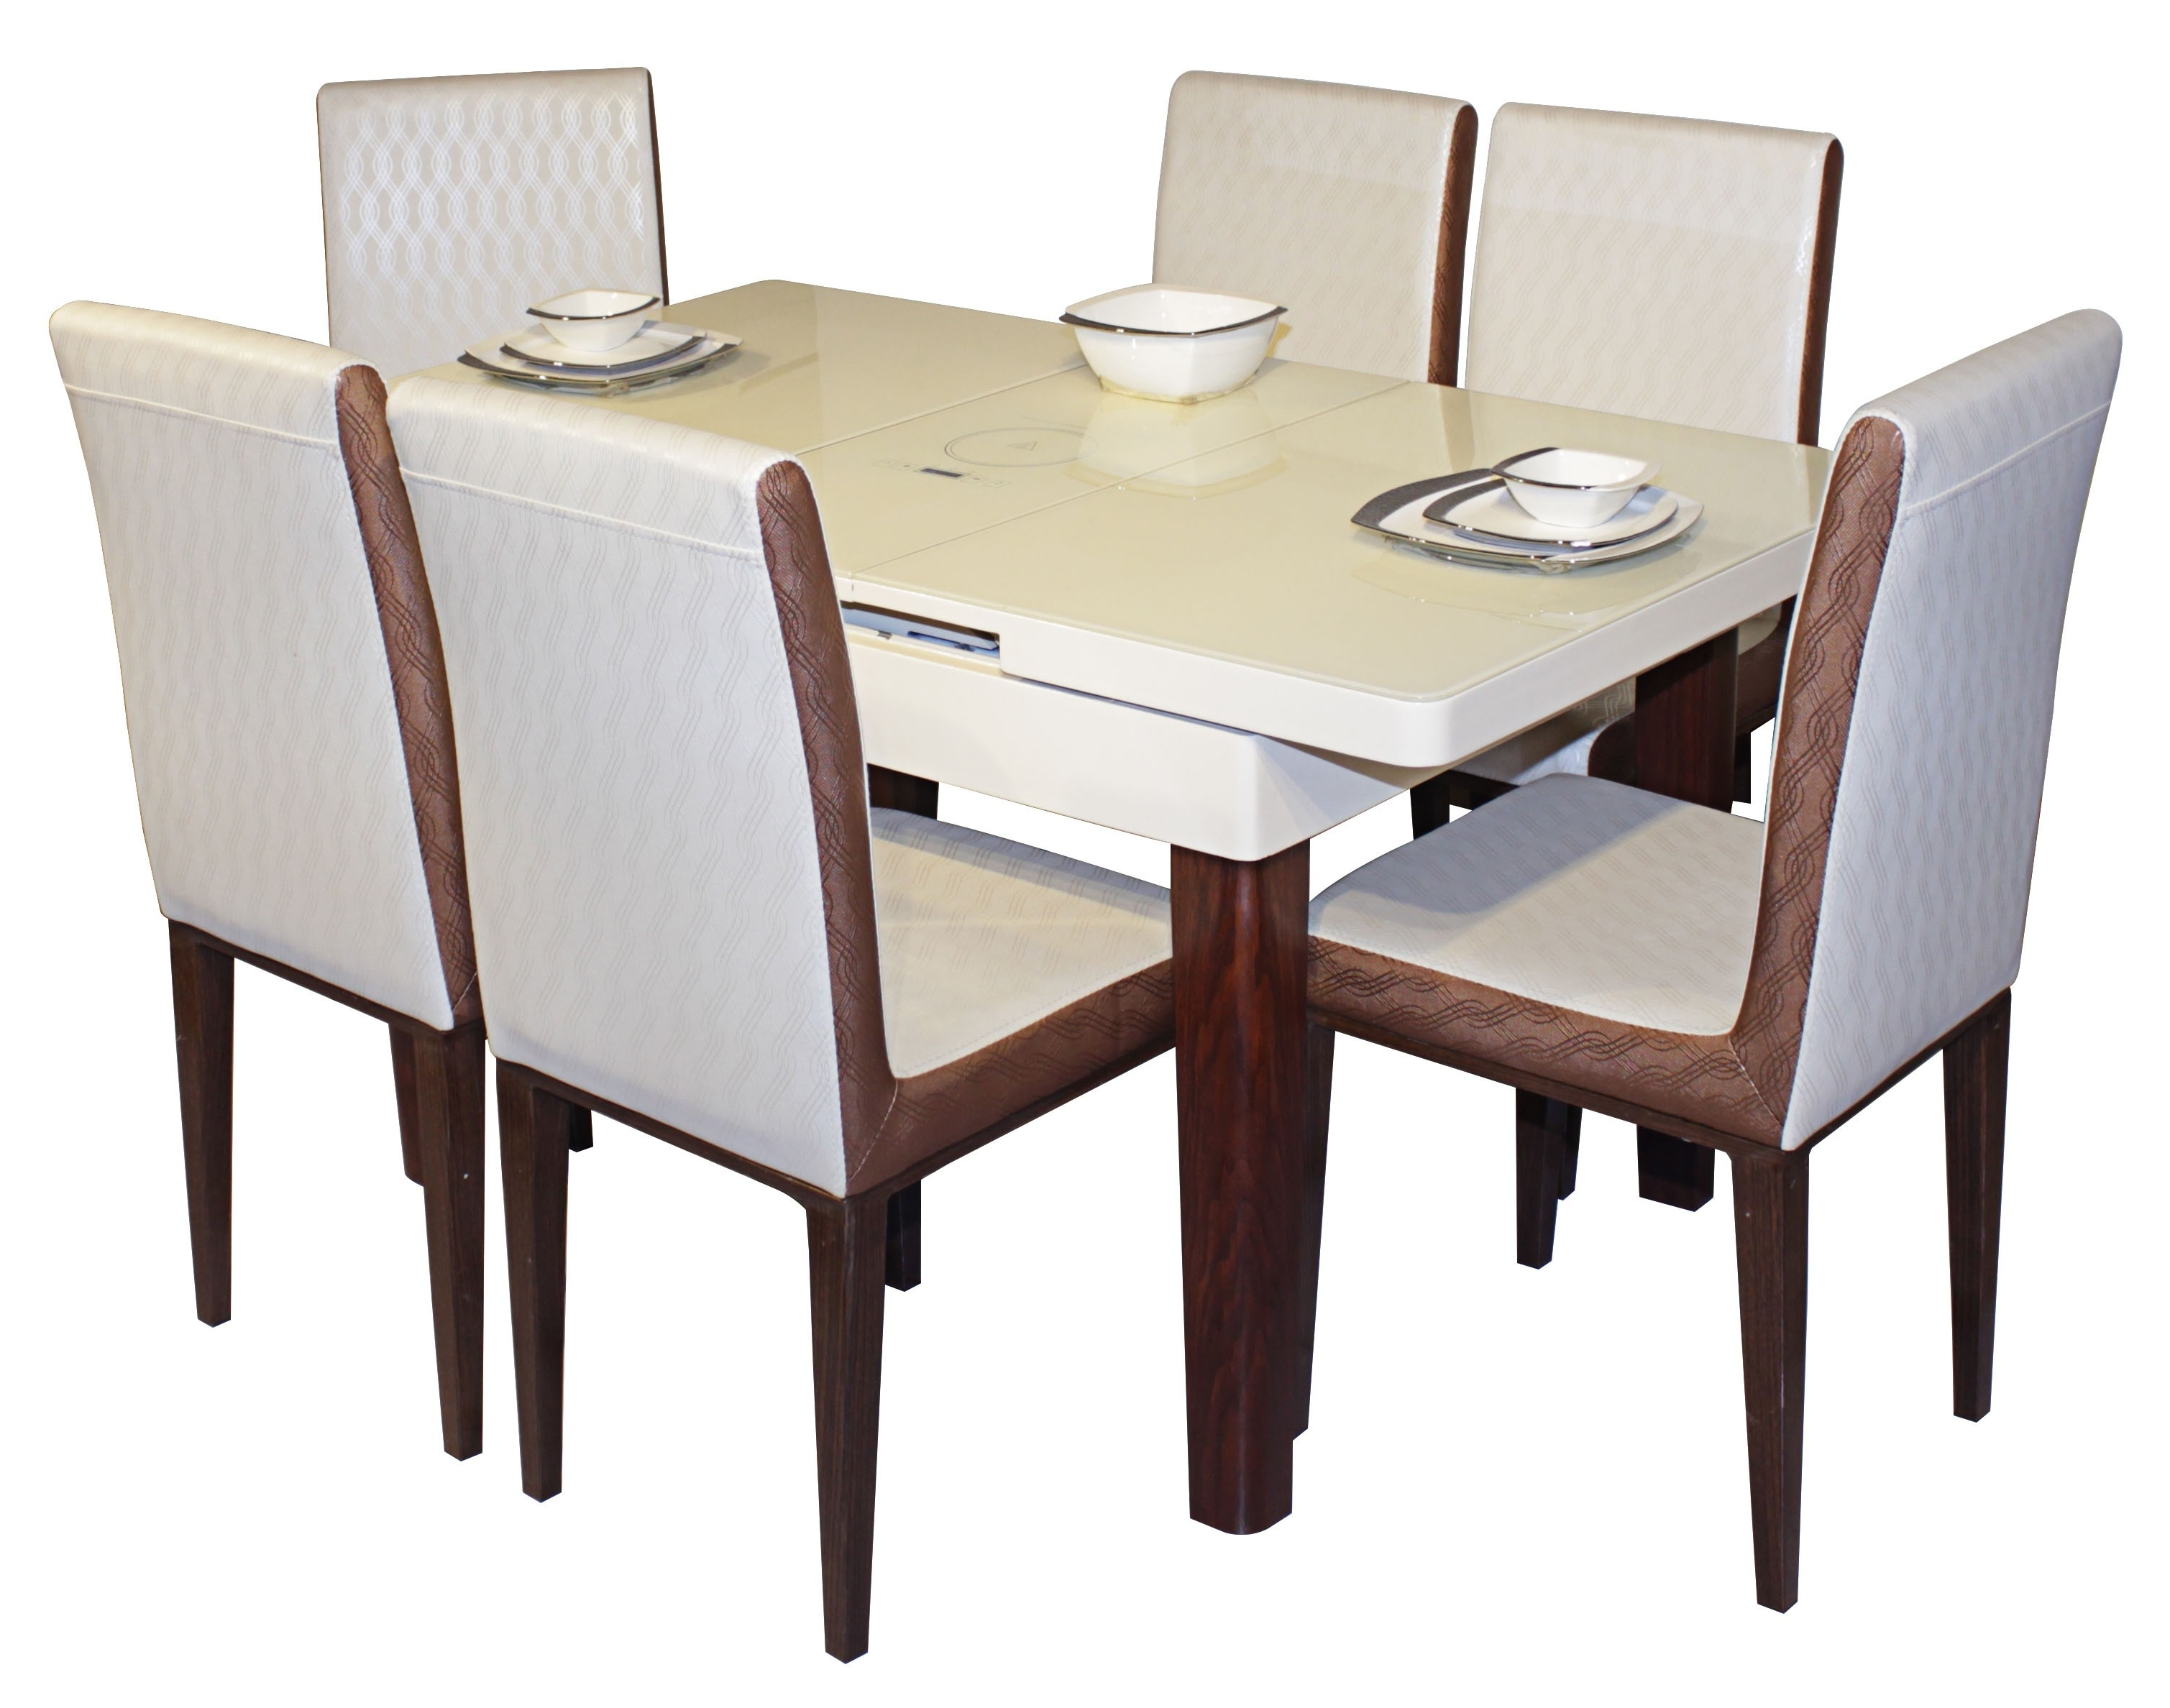 Most Popular 6 Seater Dining Table And Chairs 6 Seater Dining Table And Chairs India Throughout 6 Seat Dining Table Sets (View 11 of 25)